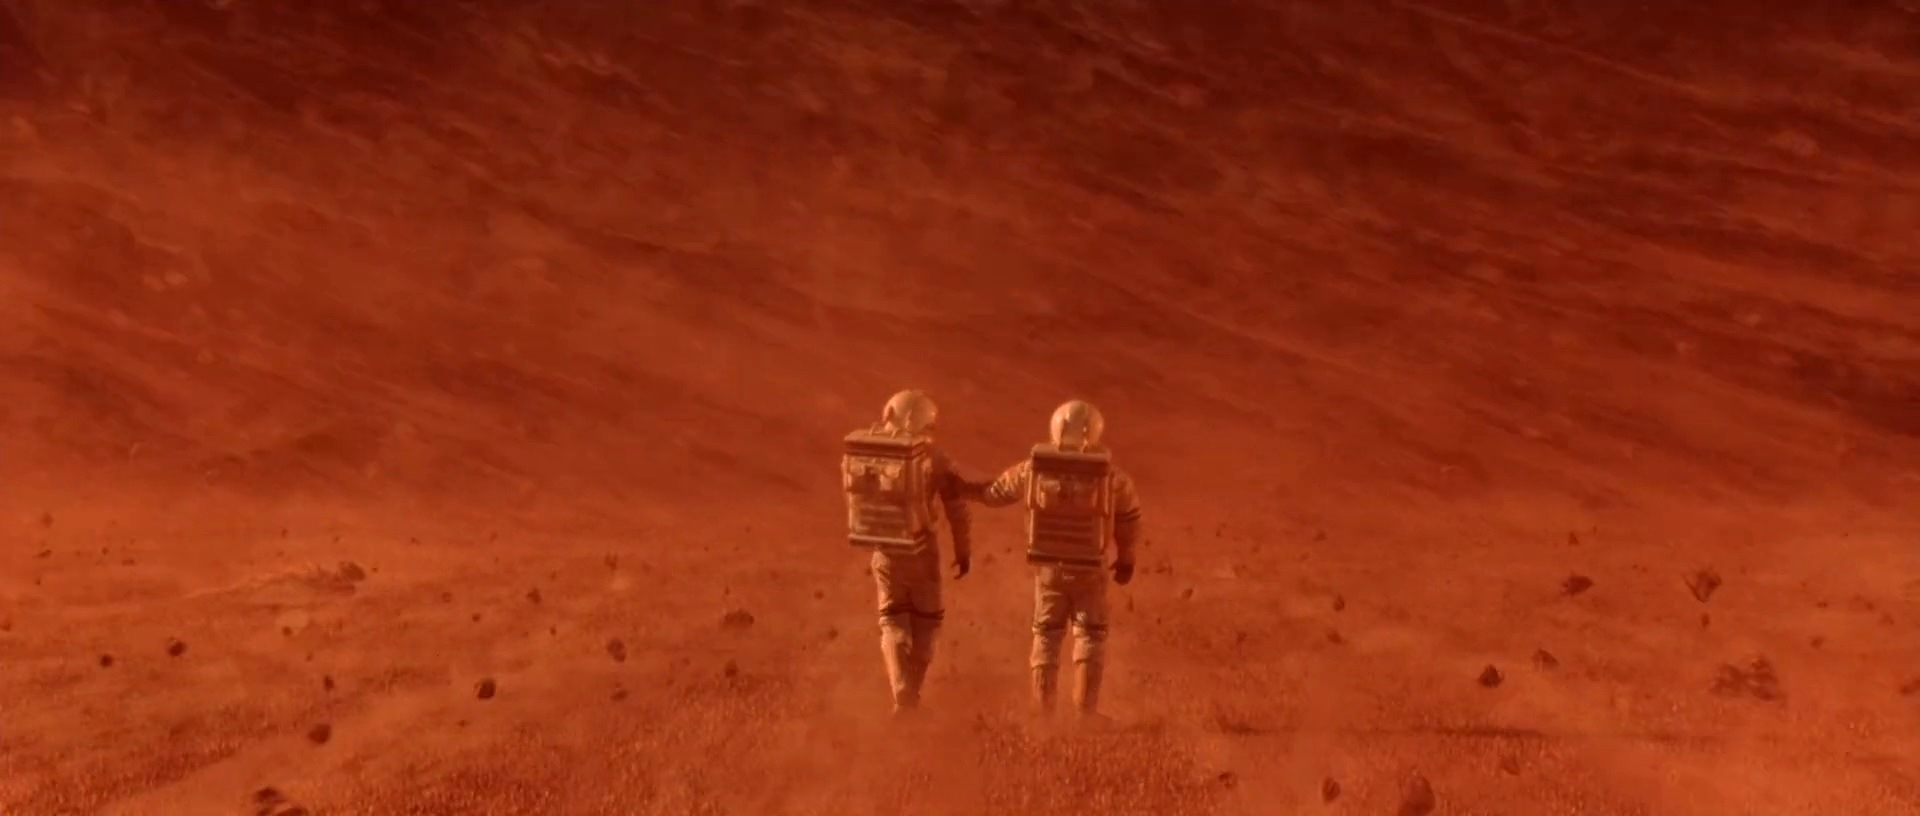 human Mars: HD images from Mission to Mars (2000) movie